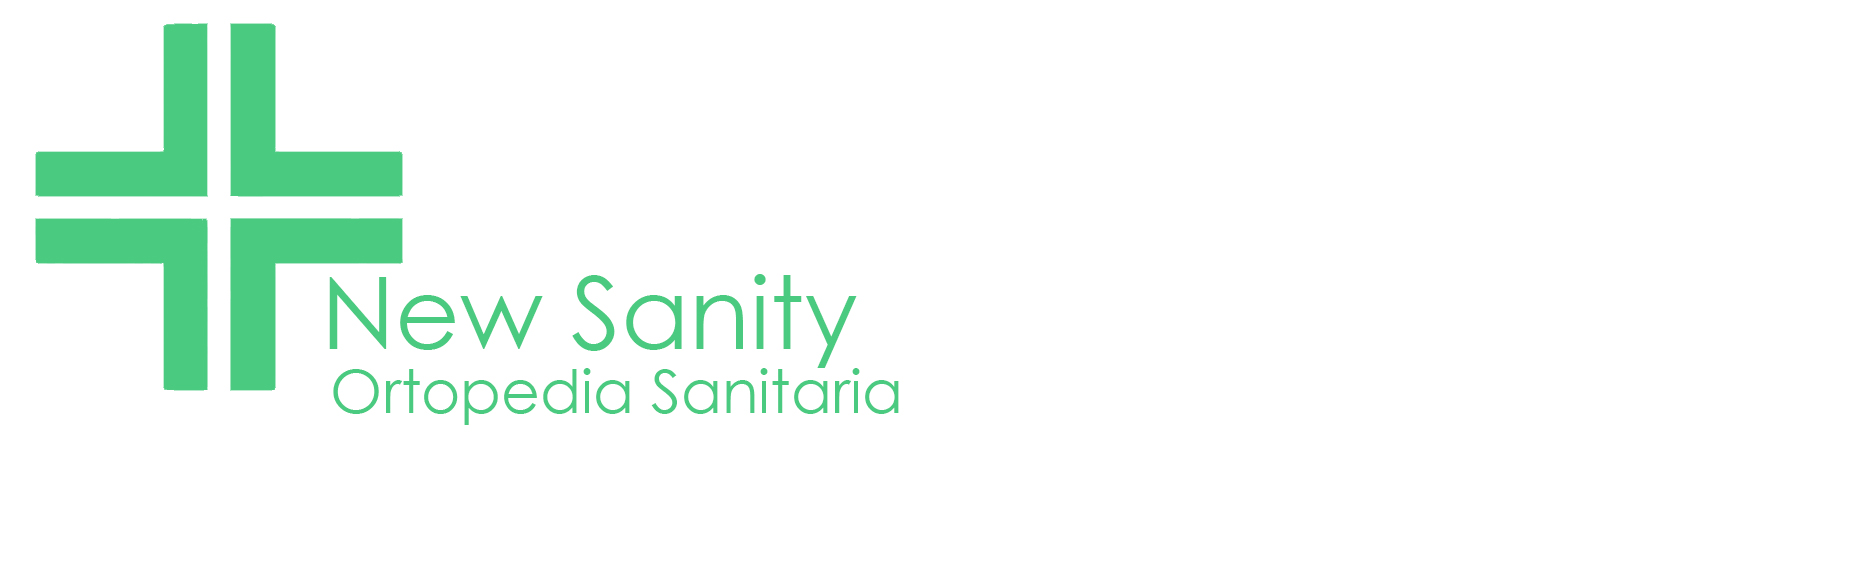 New Sanity Ortopedia e Sanitaria